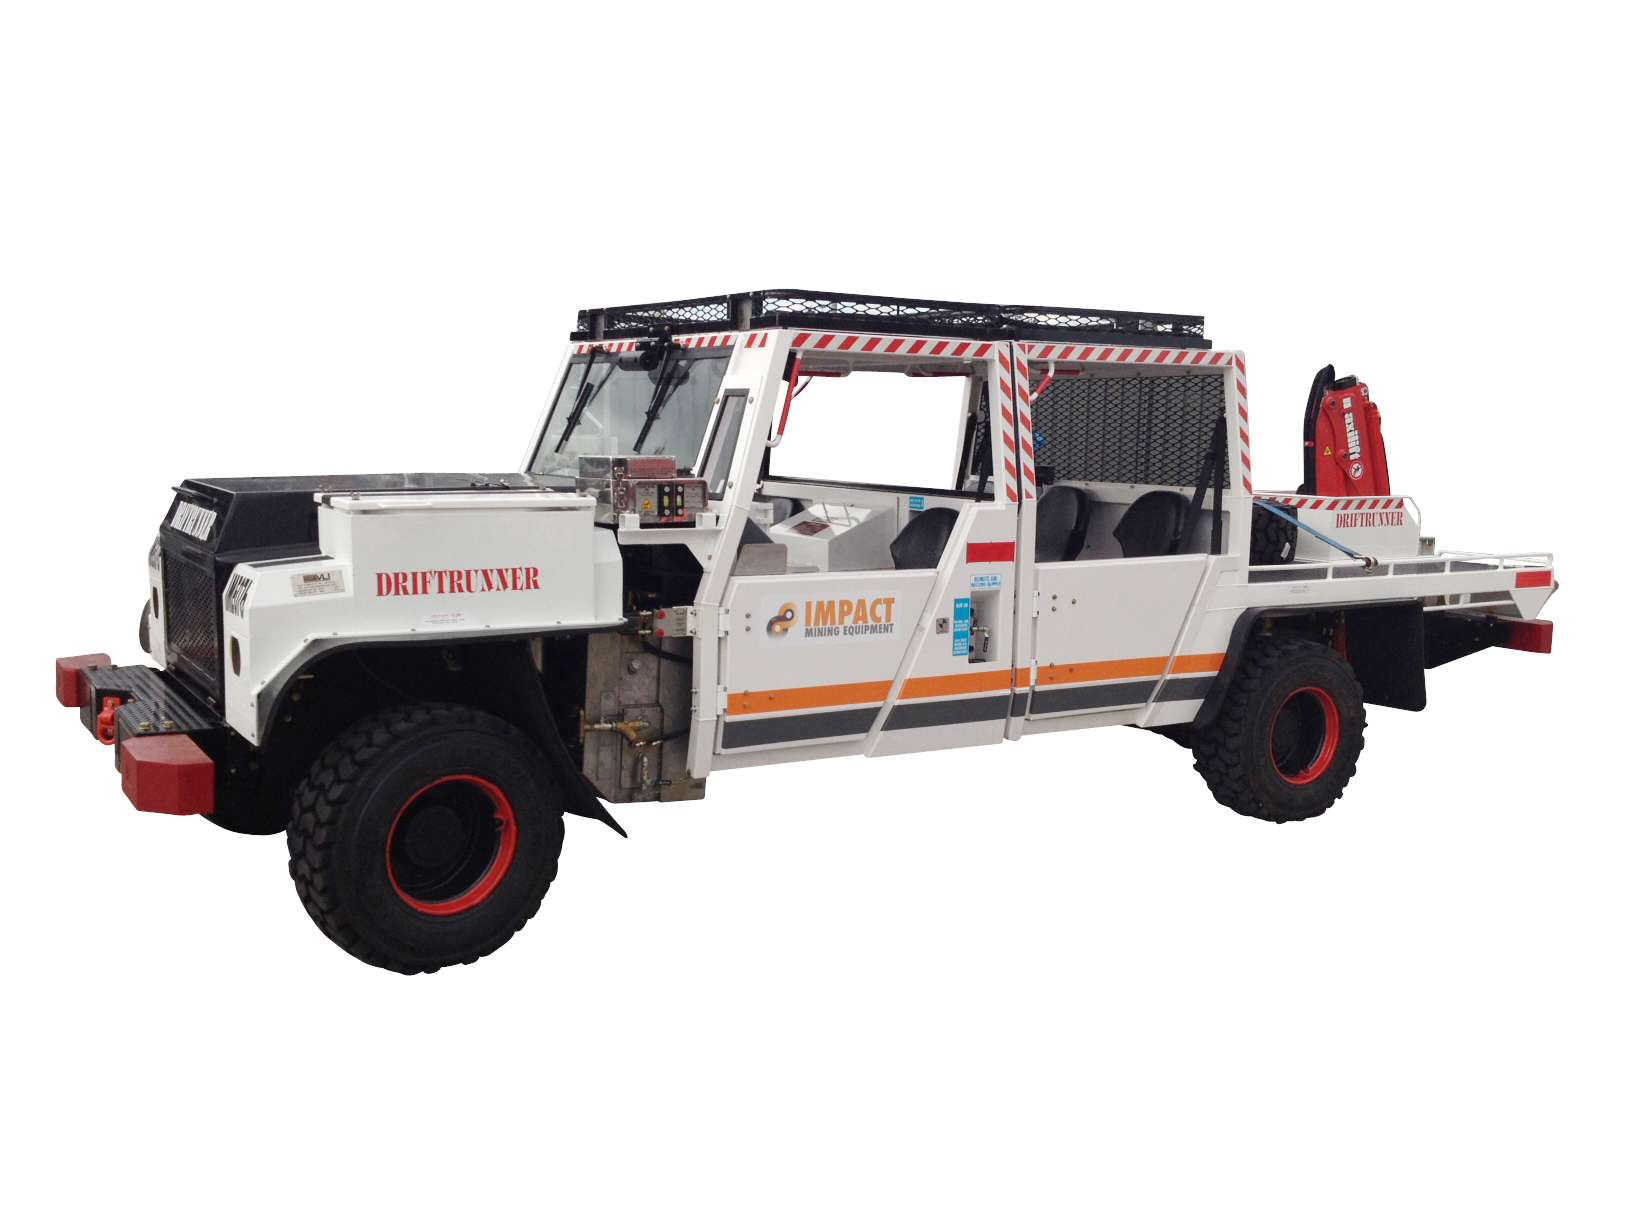 Driftrunner Dual Cab Ute with Maxilift Crane - Impact Mining